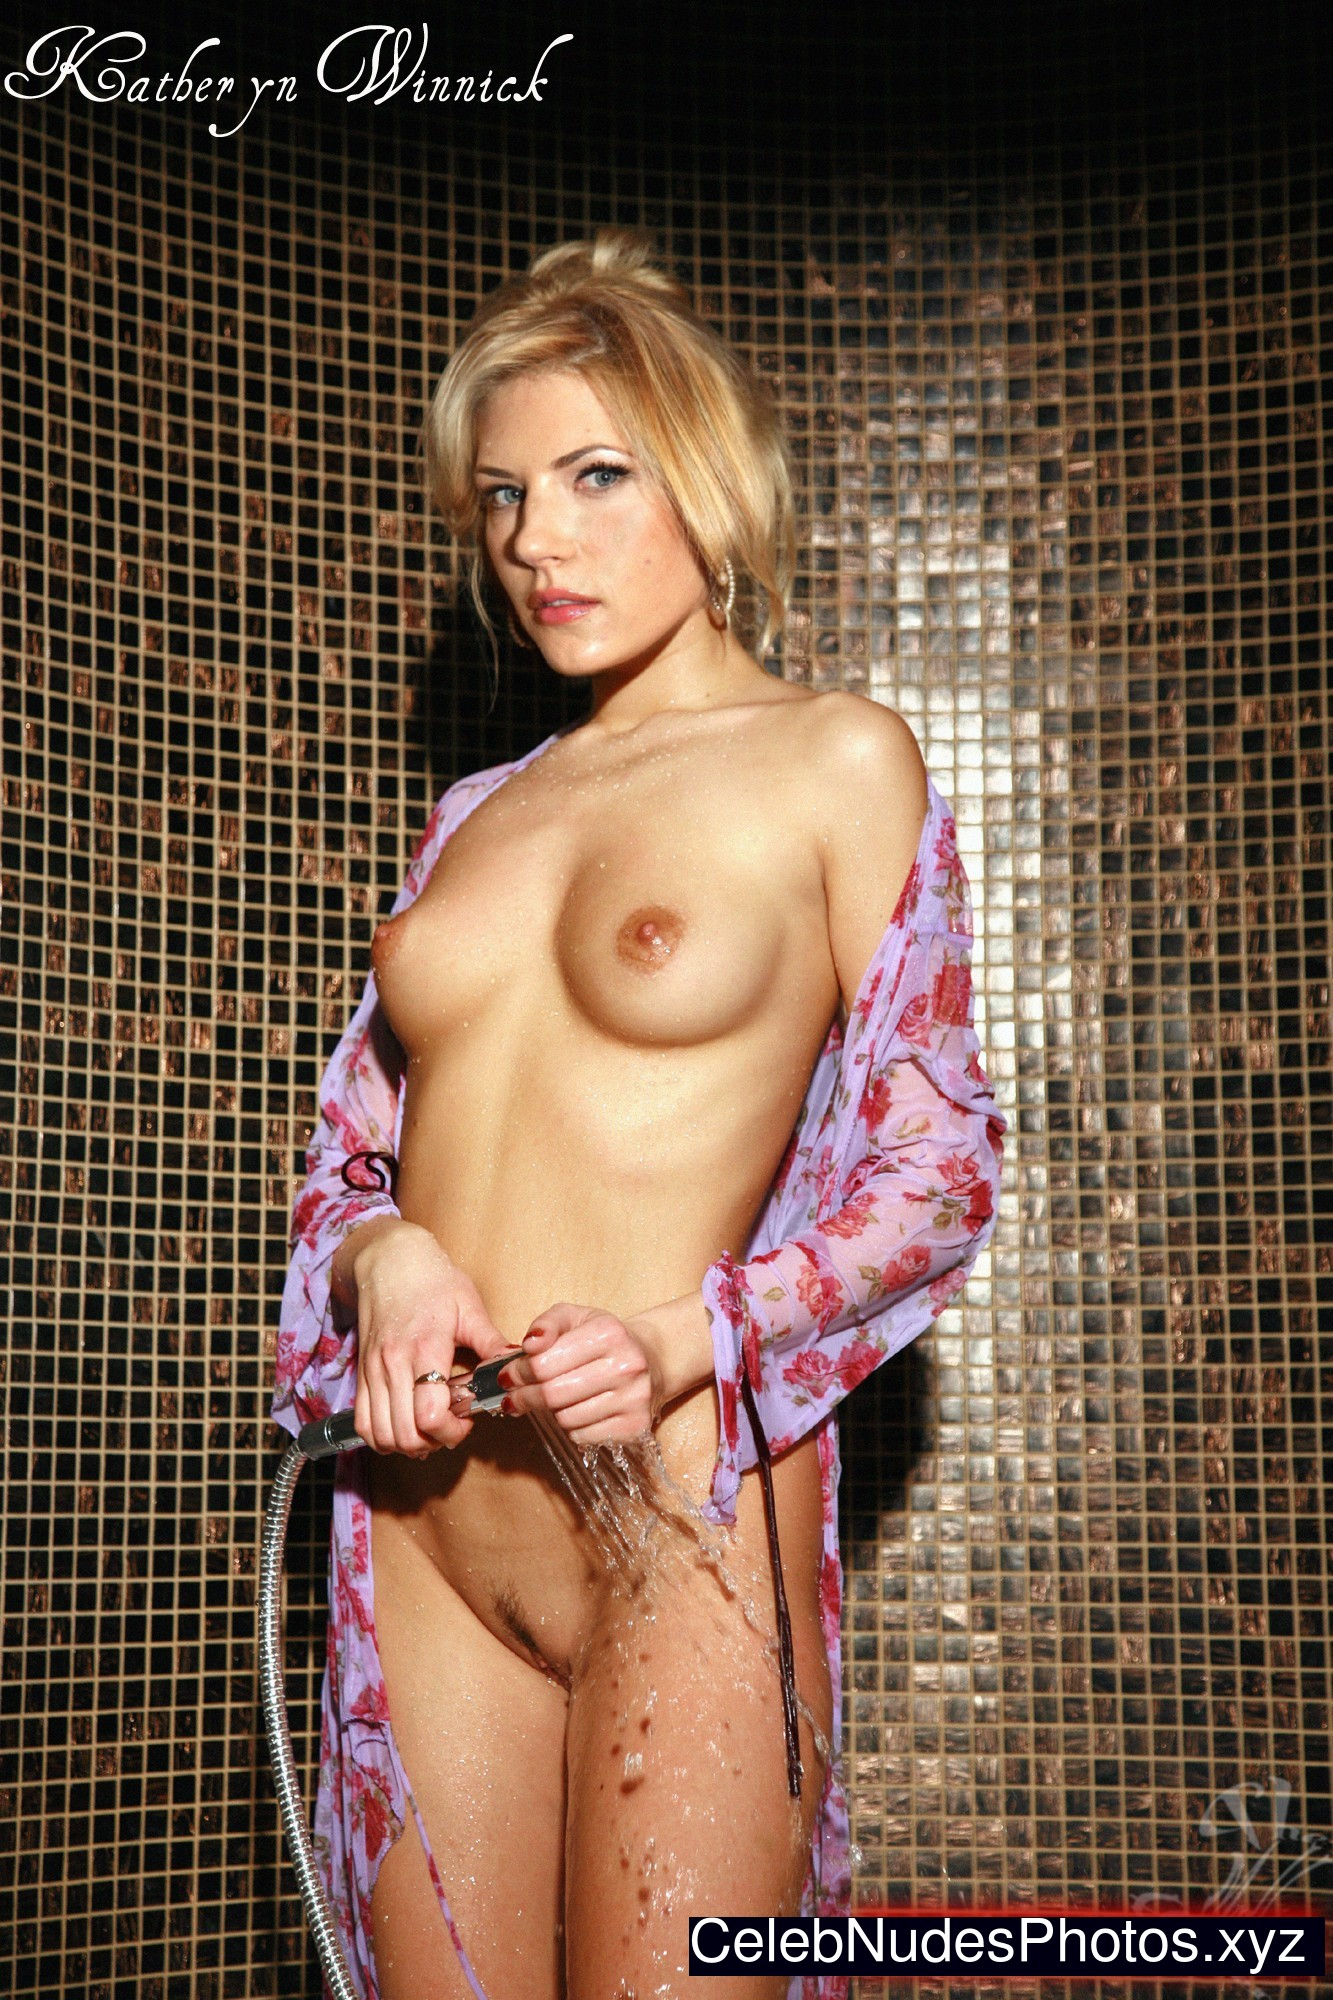 Katheryn Winnick celebrities naked